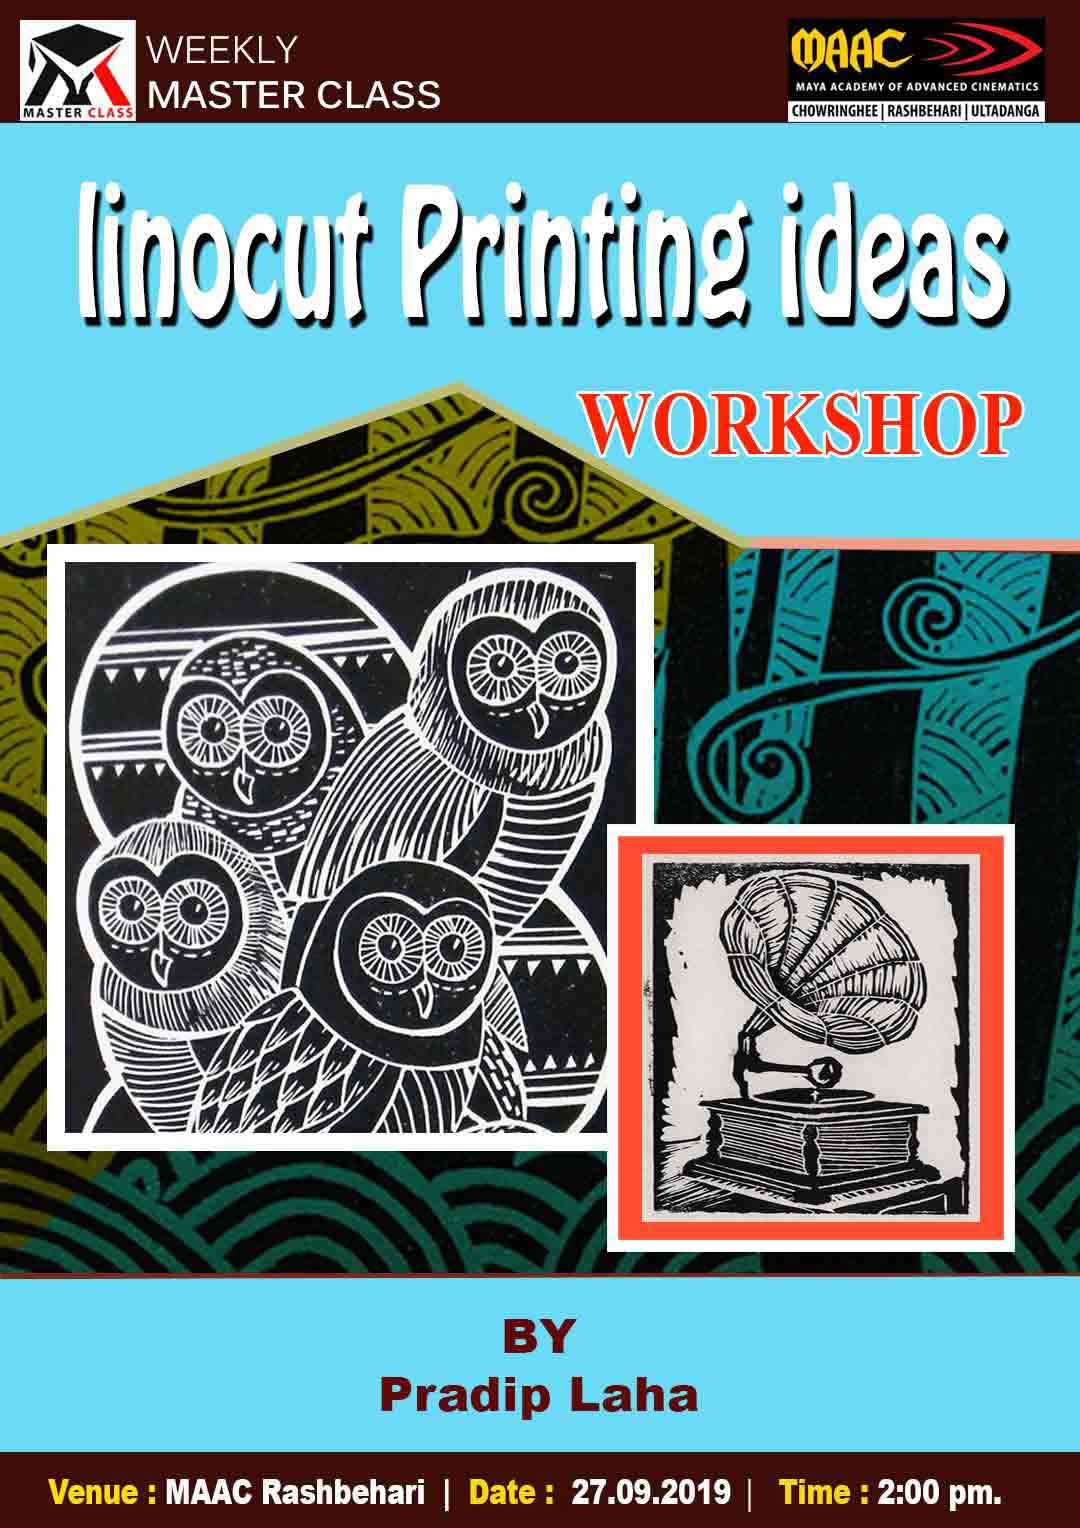 Weekly Master Class on Lino Printing Ideas